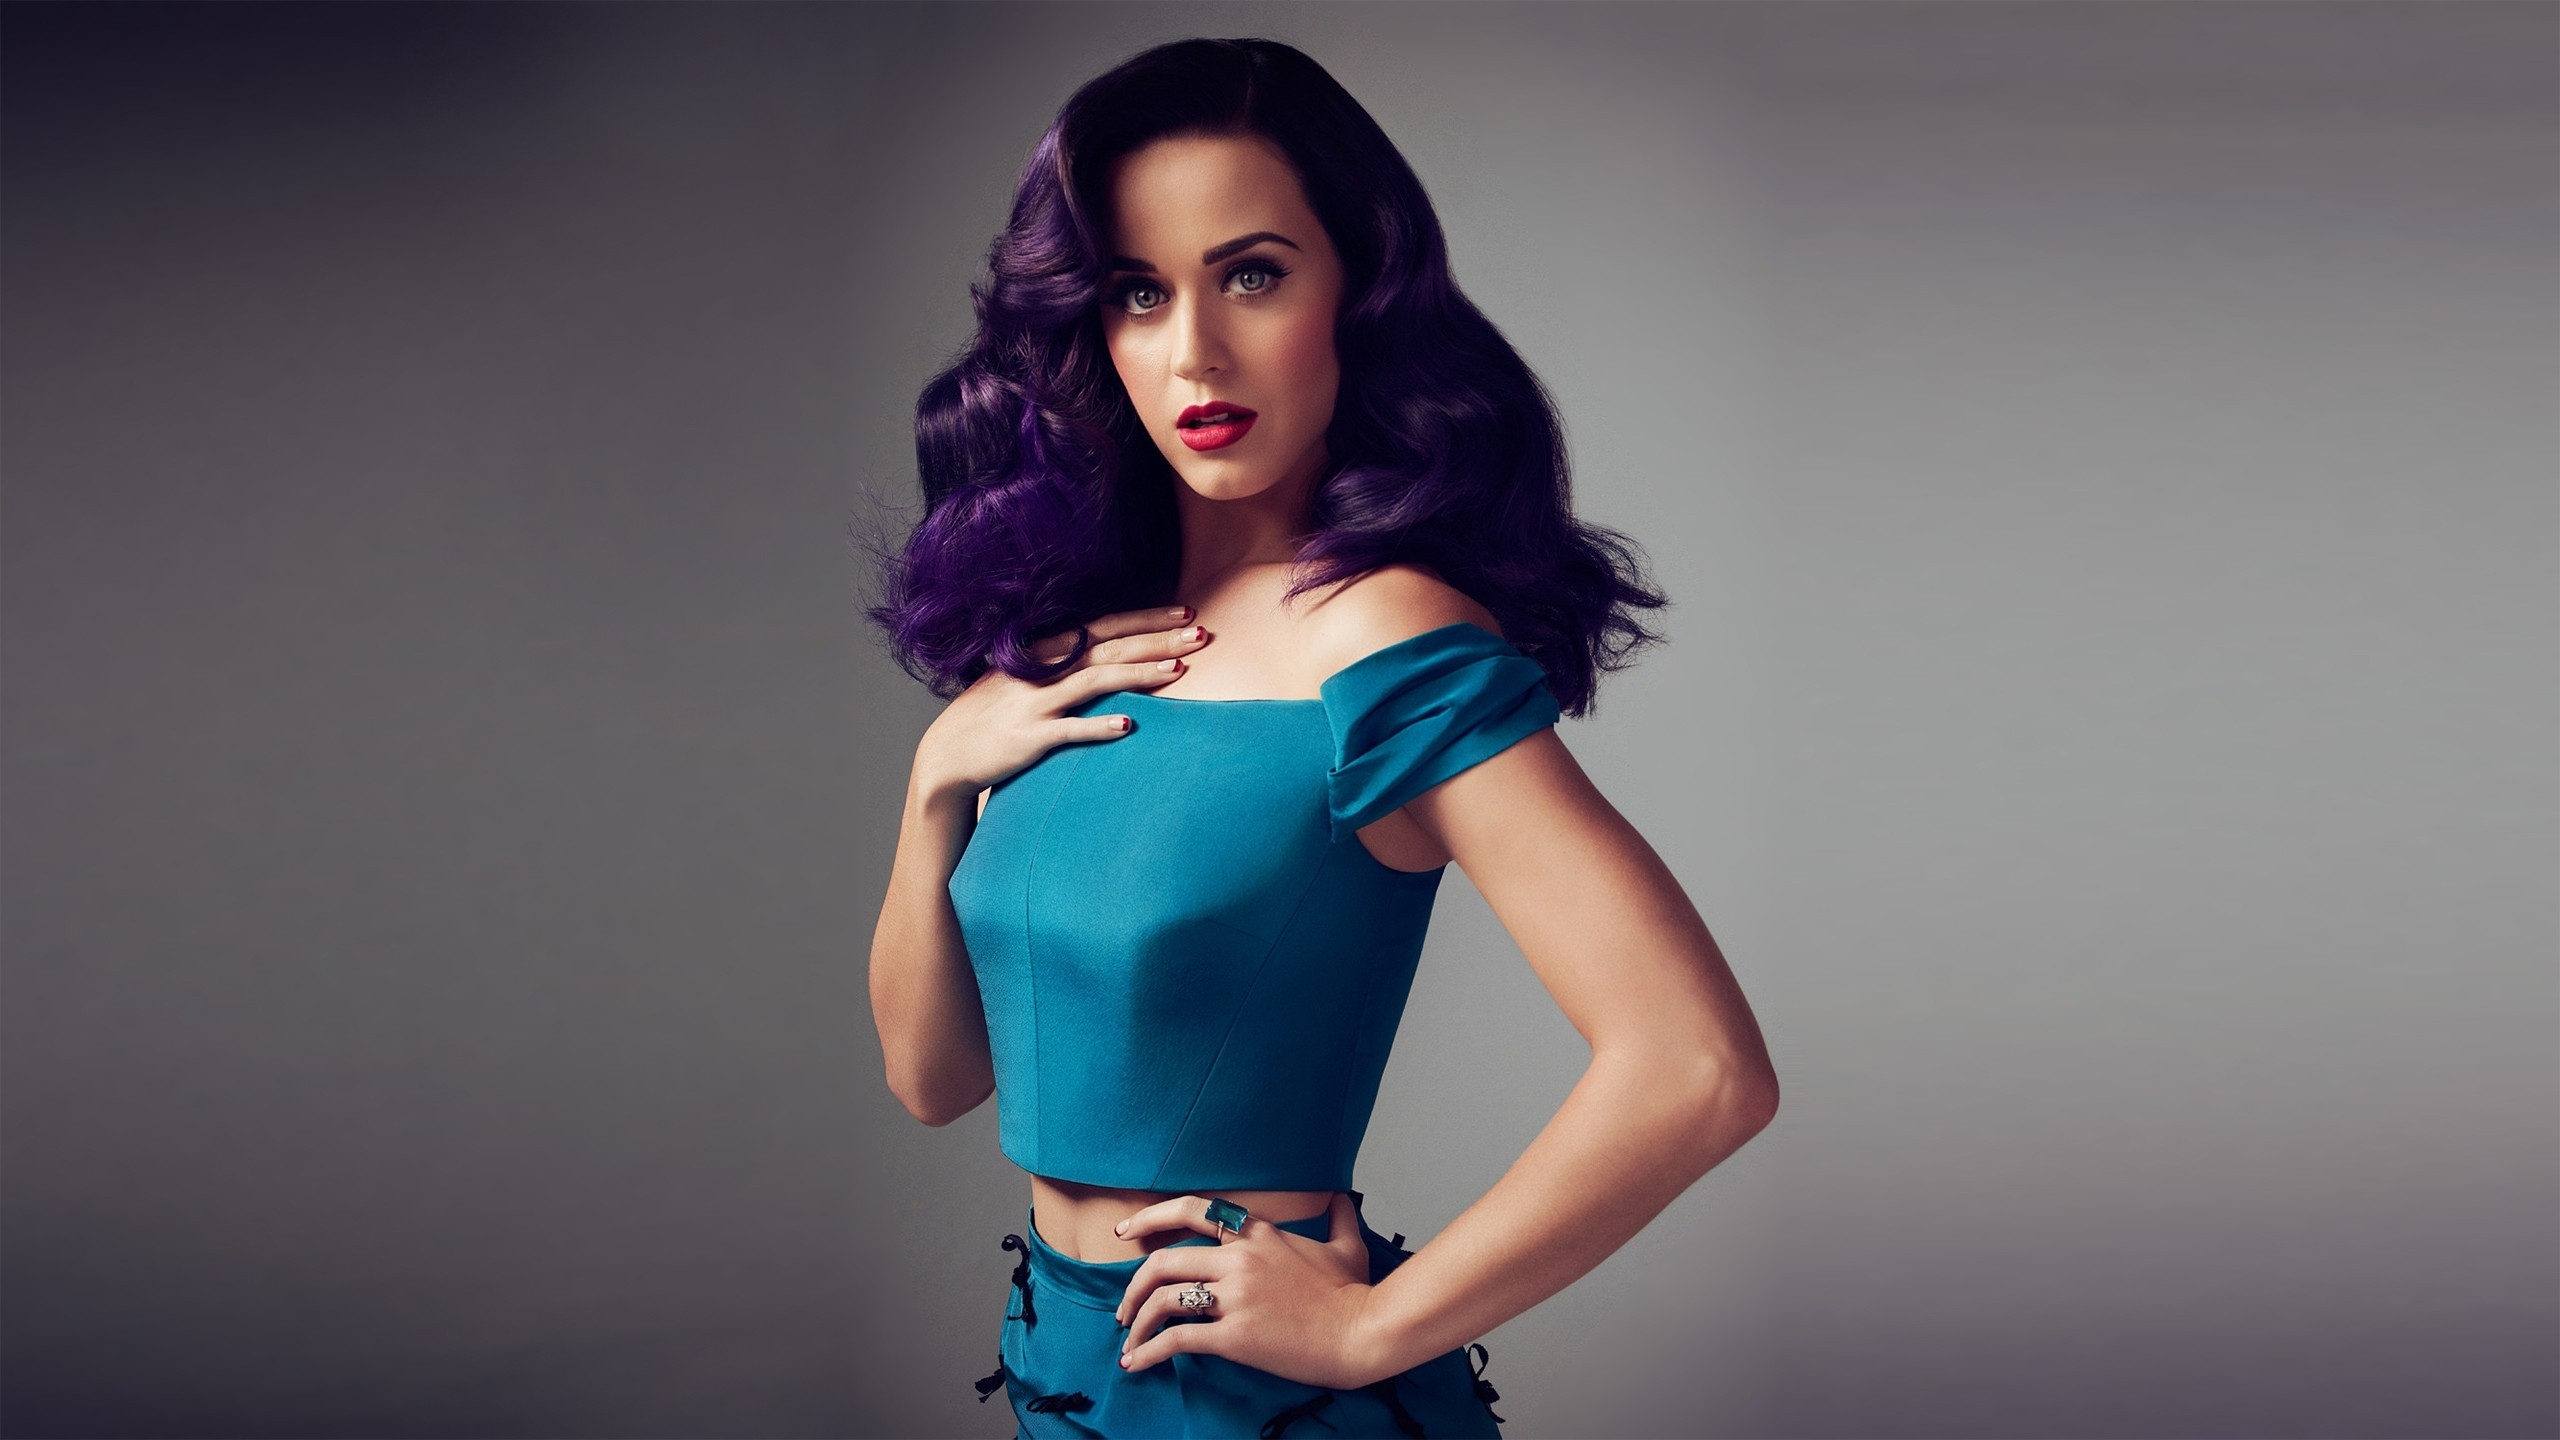 katy perry wallpapers - page 1 - hd wallpapers